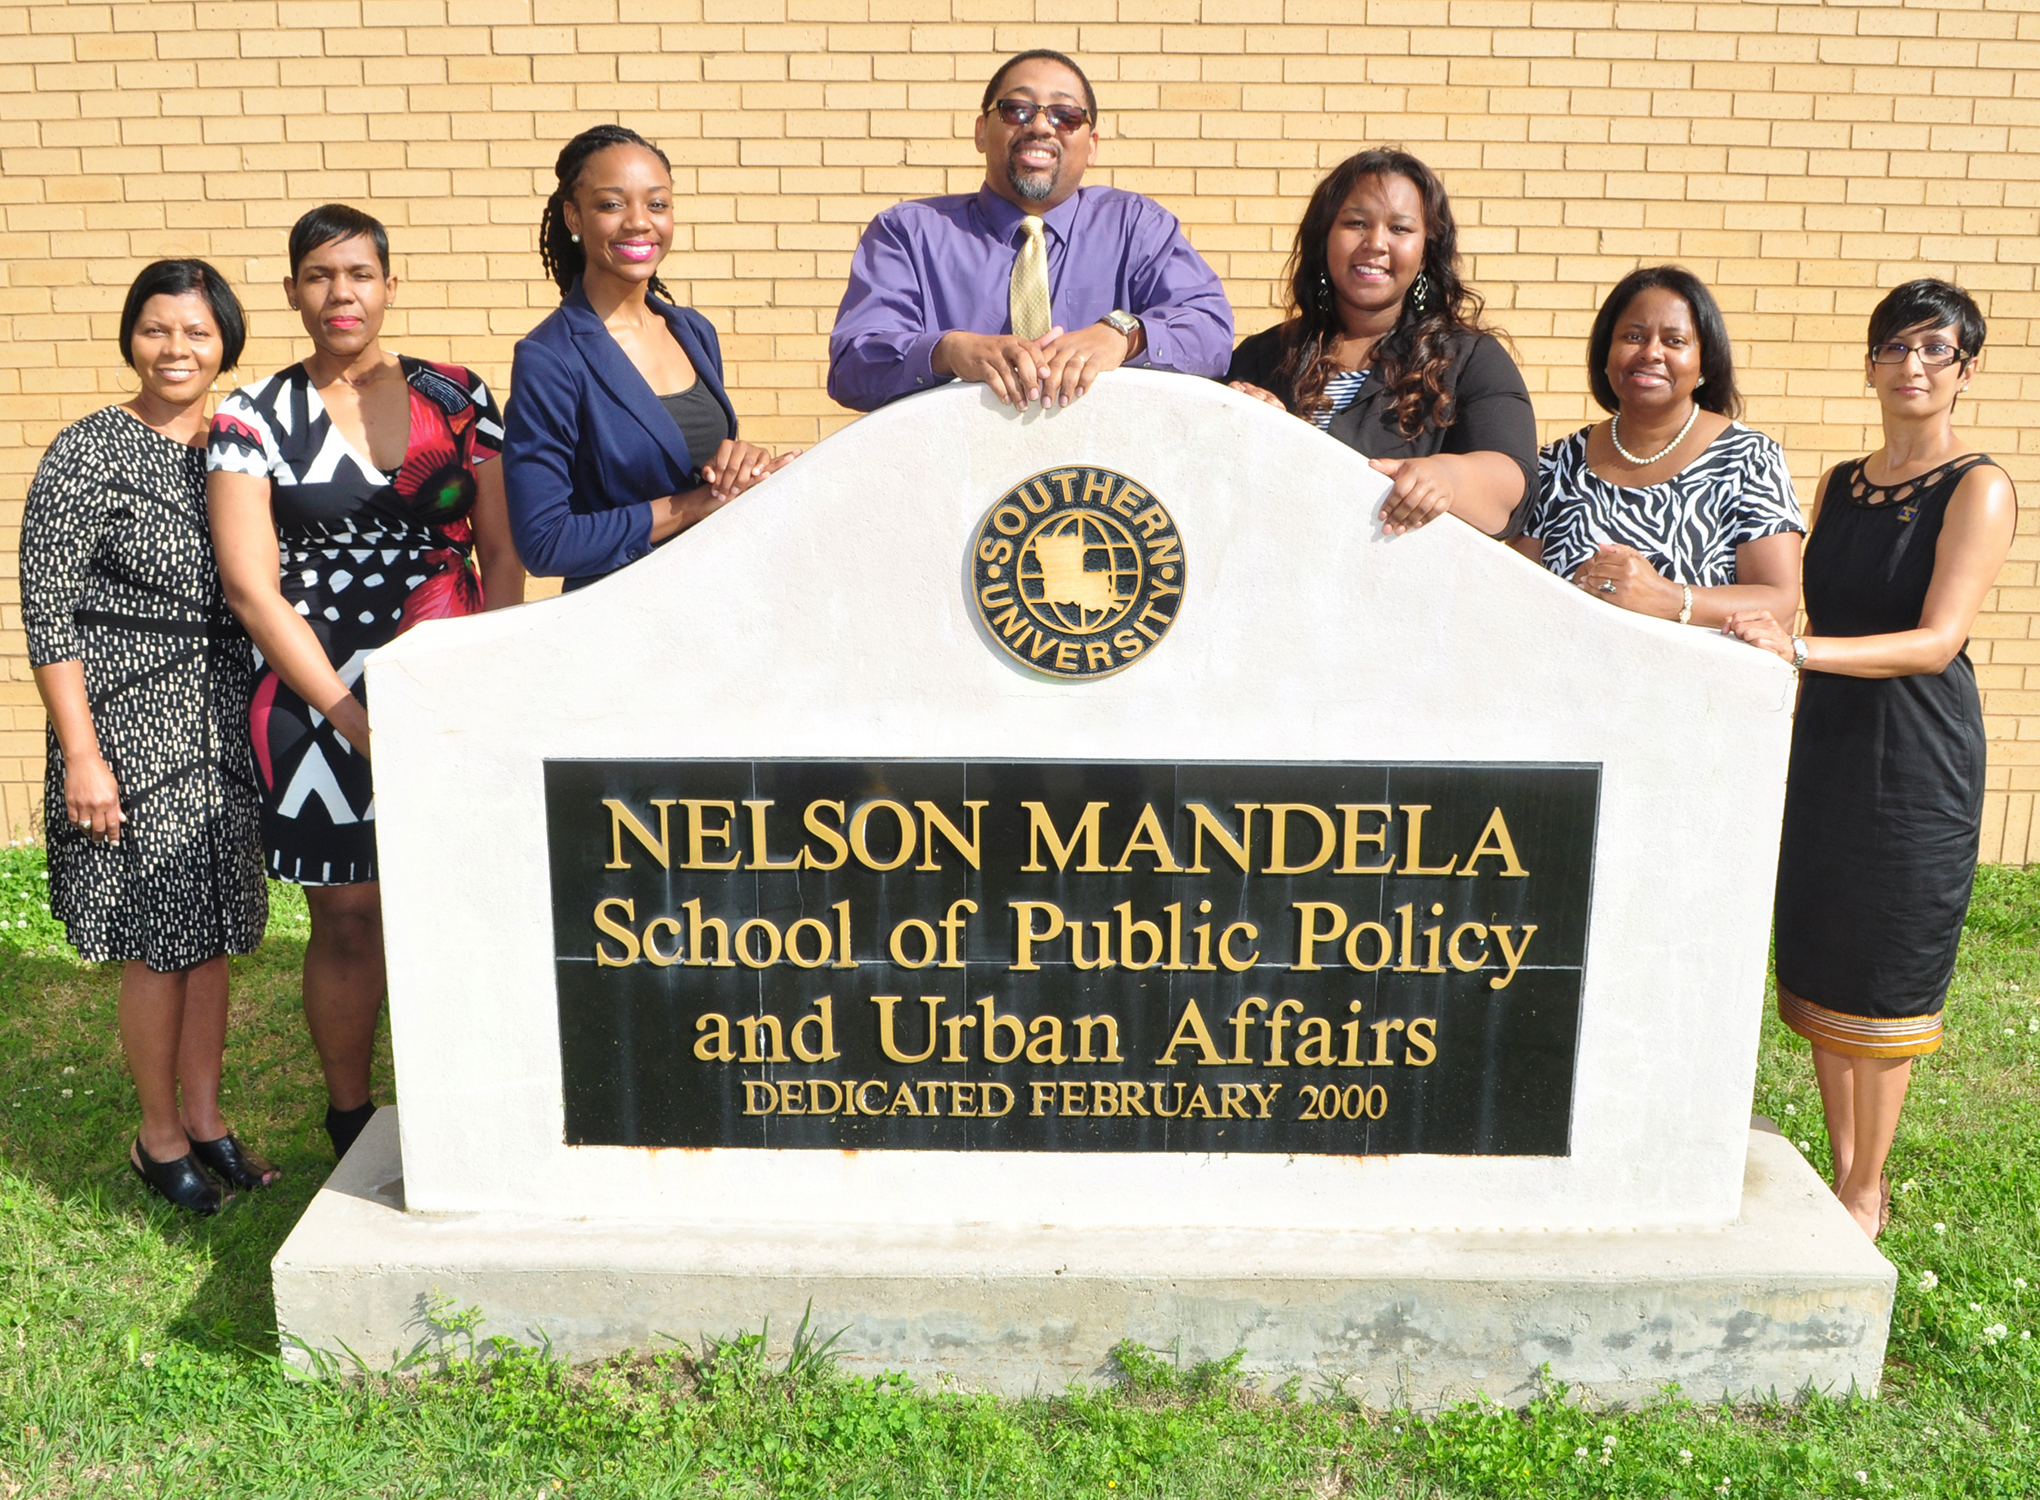 Southern University Baton Rouge students and faculty will attend the National Conference of Black Political Scientists (NCOBPS) in Jackson, Mississippi, March 16 -20, 2016. Pictured (left –right): professors Melanie Johnson-Cunningham and Leslie Grover, student Arnedia Wallace, interim dean Albert Samuels, student Sicqora Williams, and professors Blanche Smith and Revathi Hines.